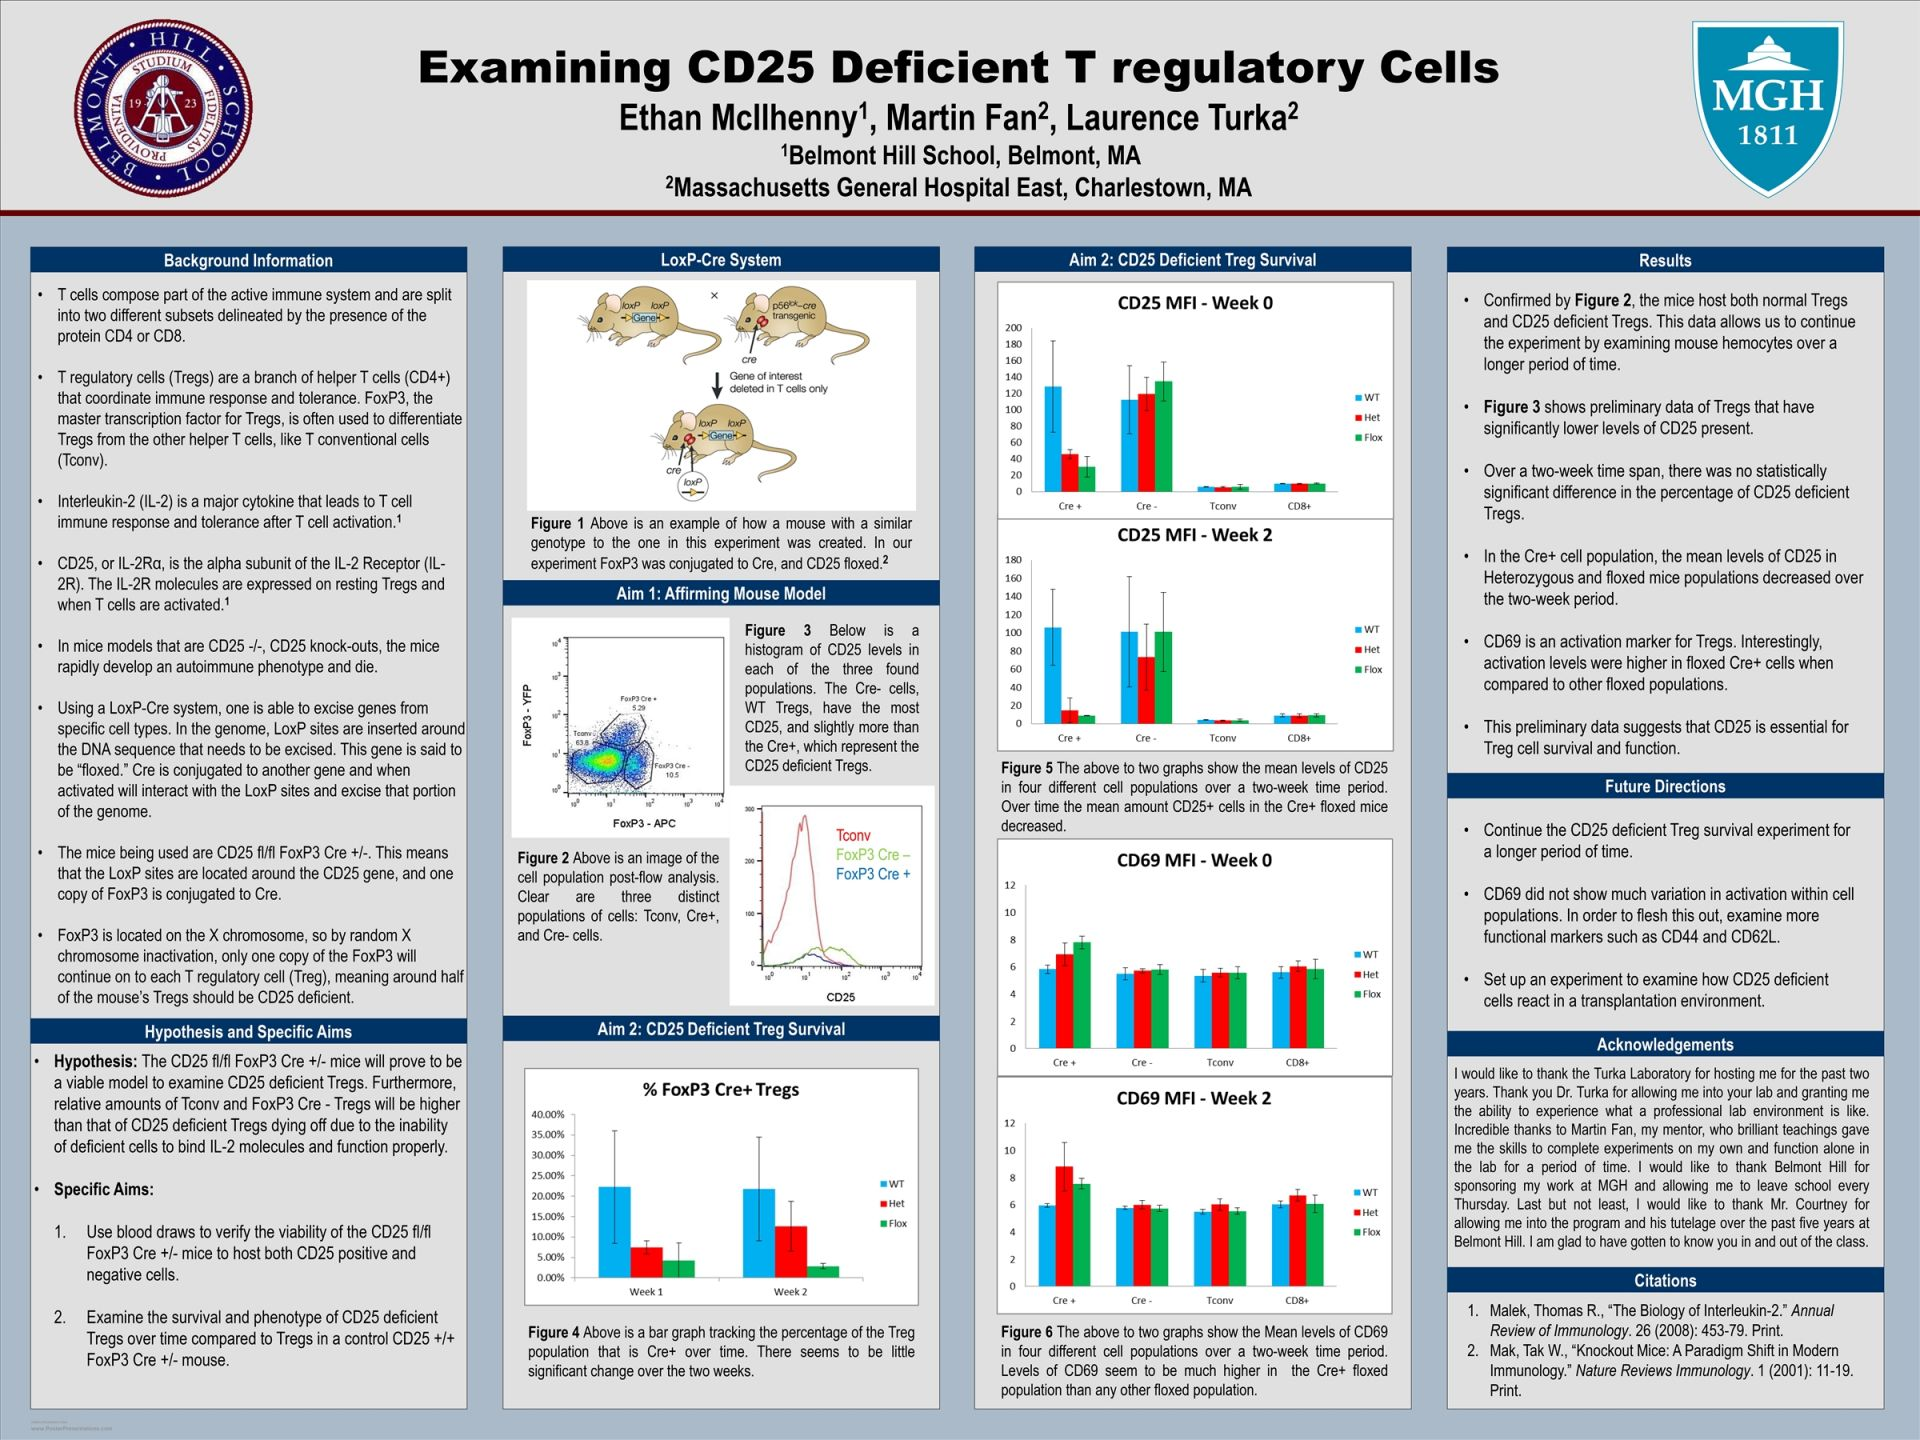 Ethan McIlhenny-Examining CD25 Deficient T Regulatory Cells